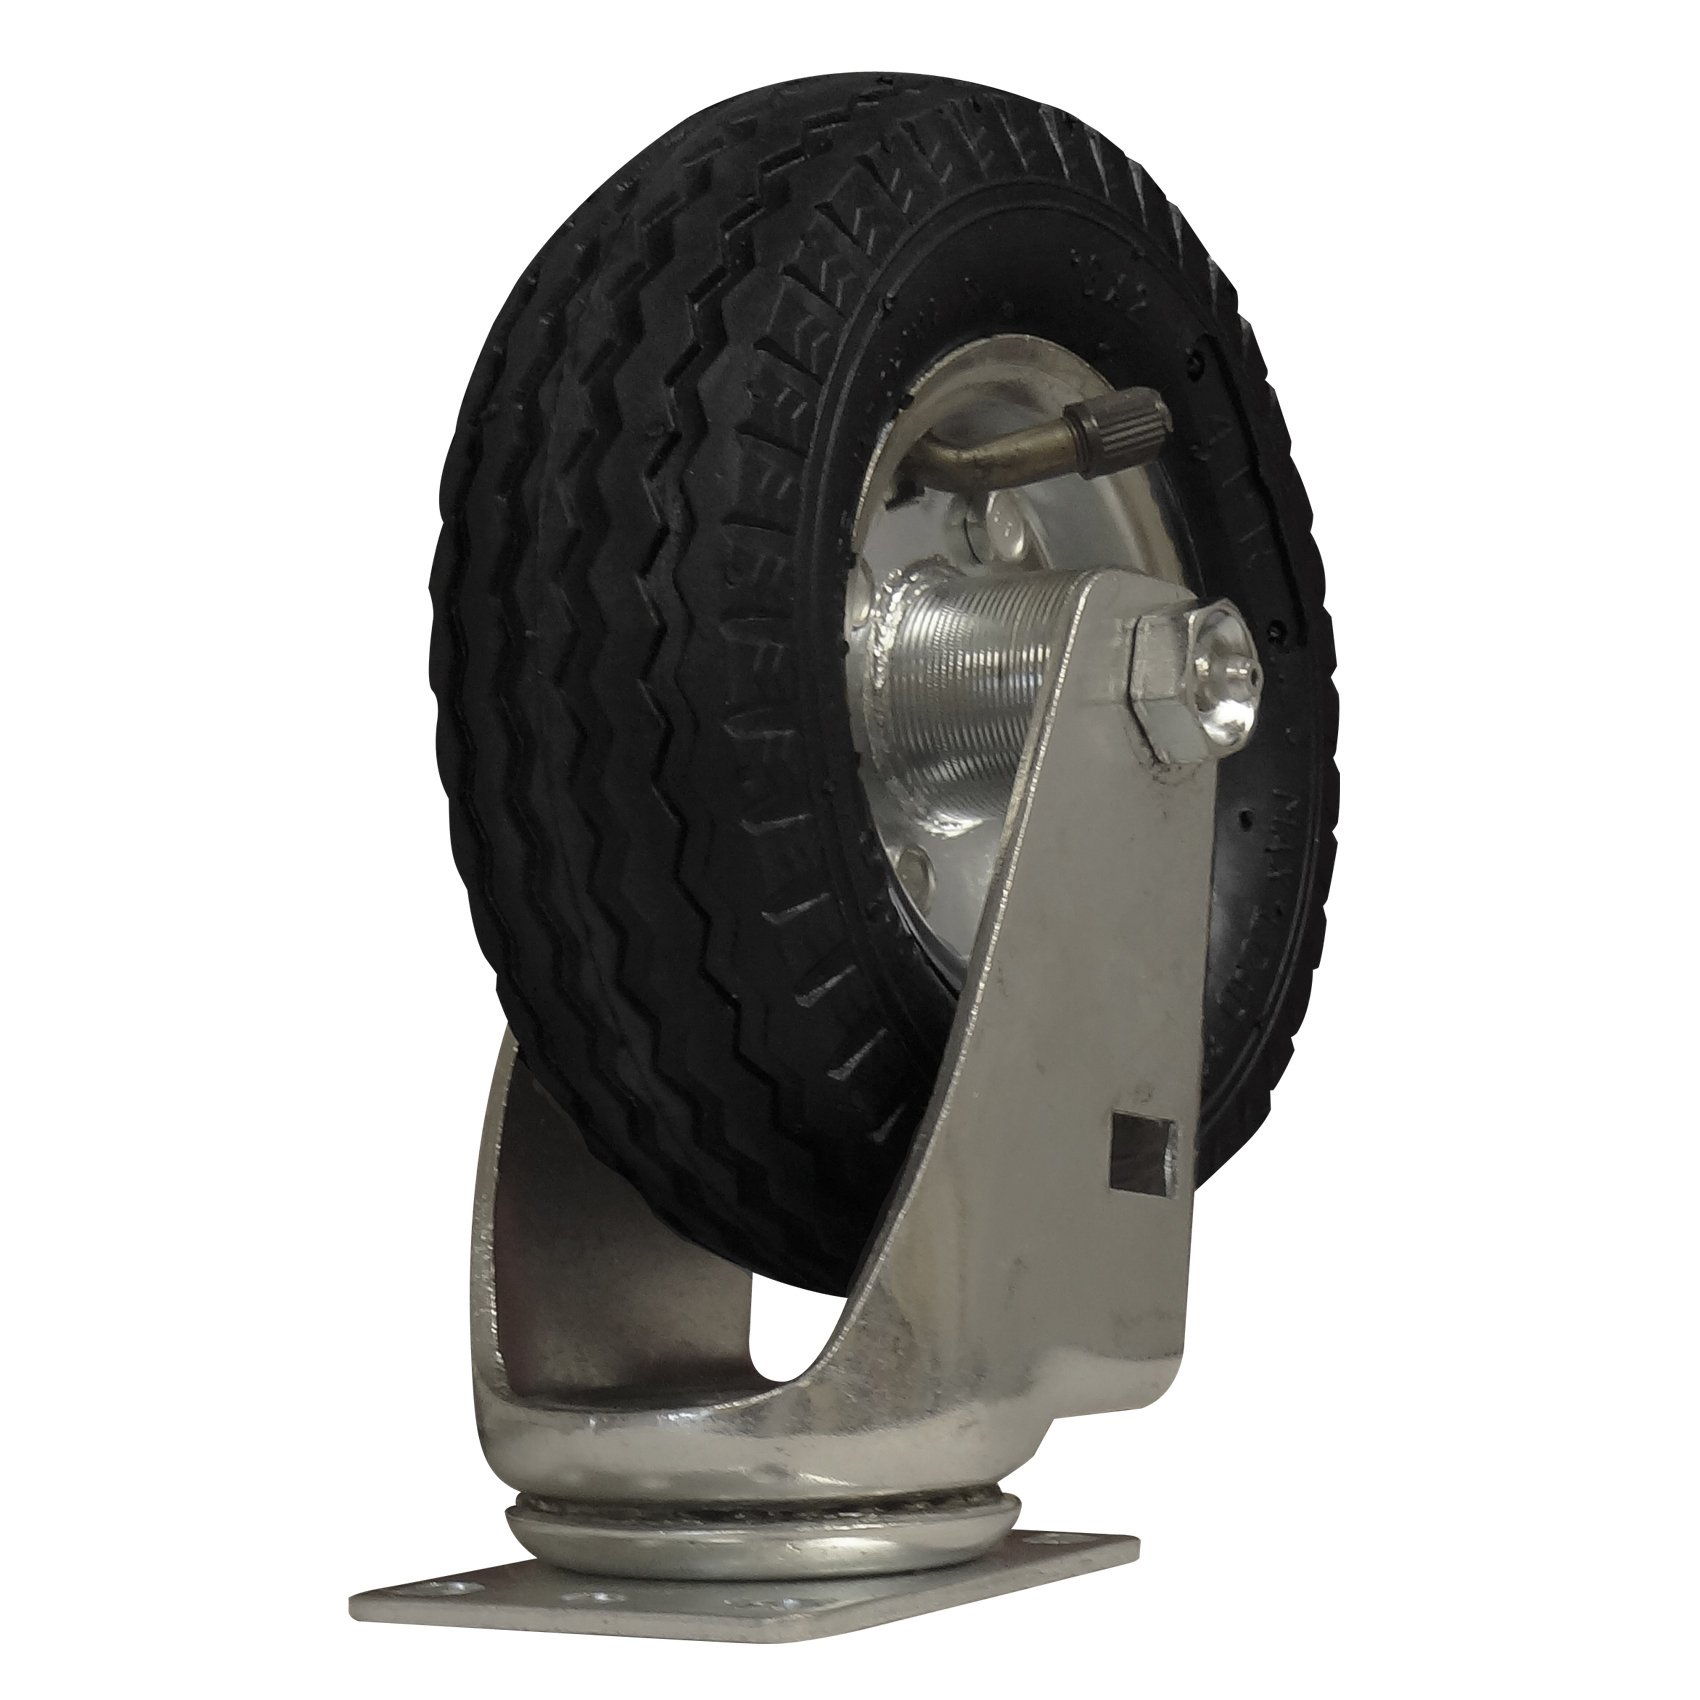 CASTER 6 INCH AIR-RIDE SWIVEL 375 lb Pneumatic Rubber, standard plate 1-3/4''x2-7/8''